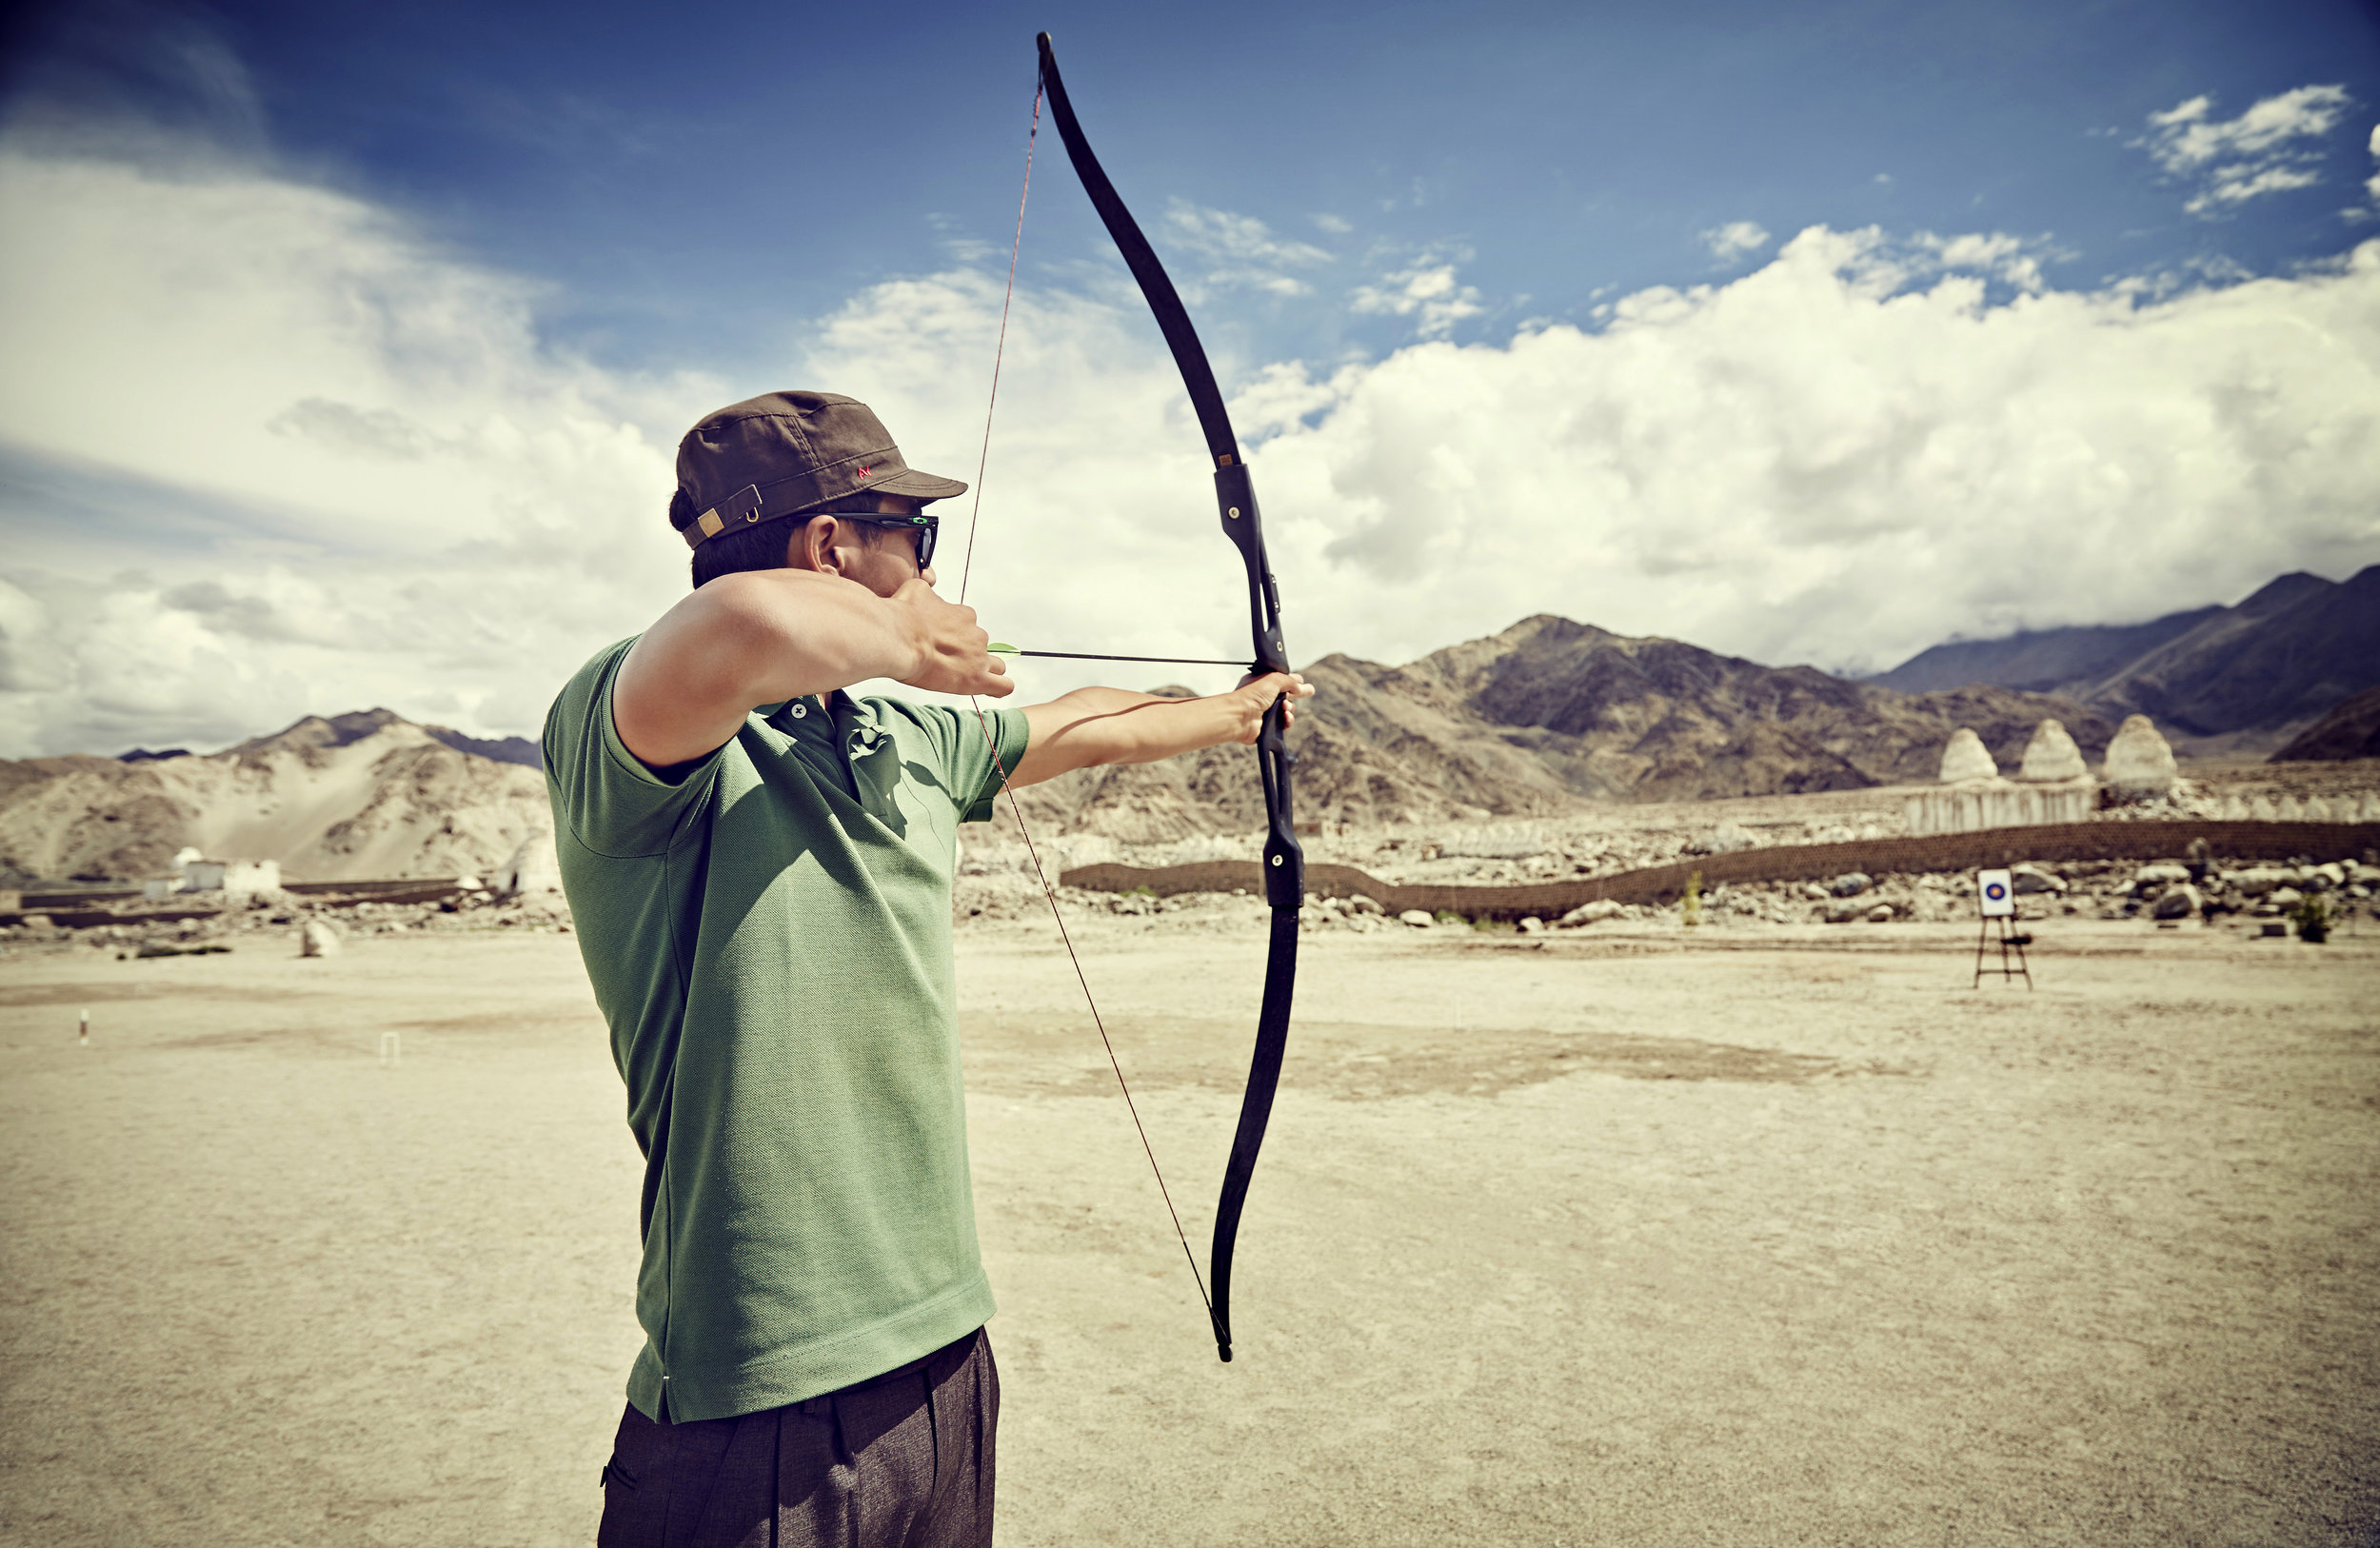 activities-archery-01_highres.jpg